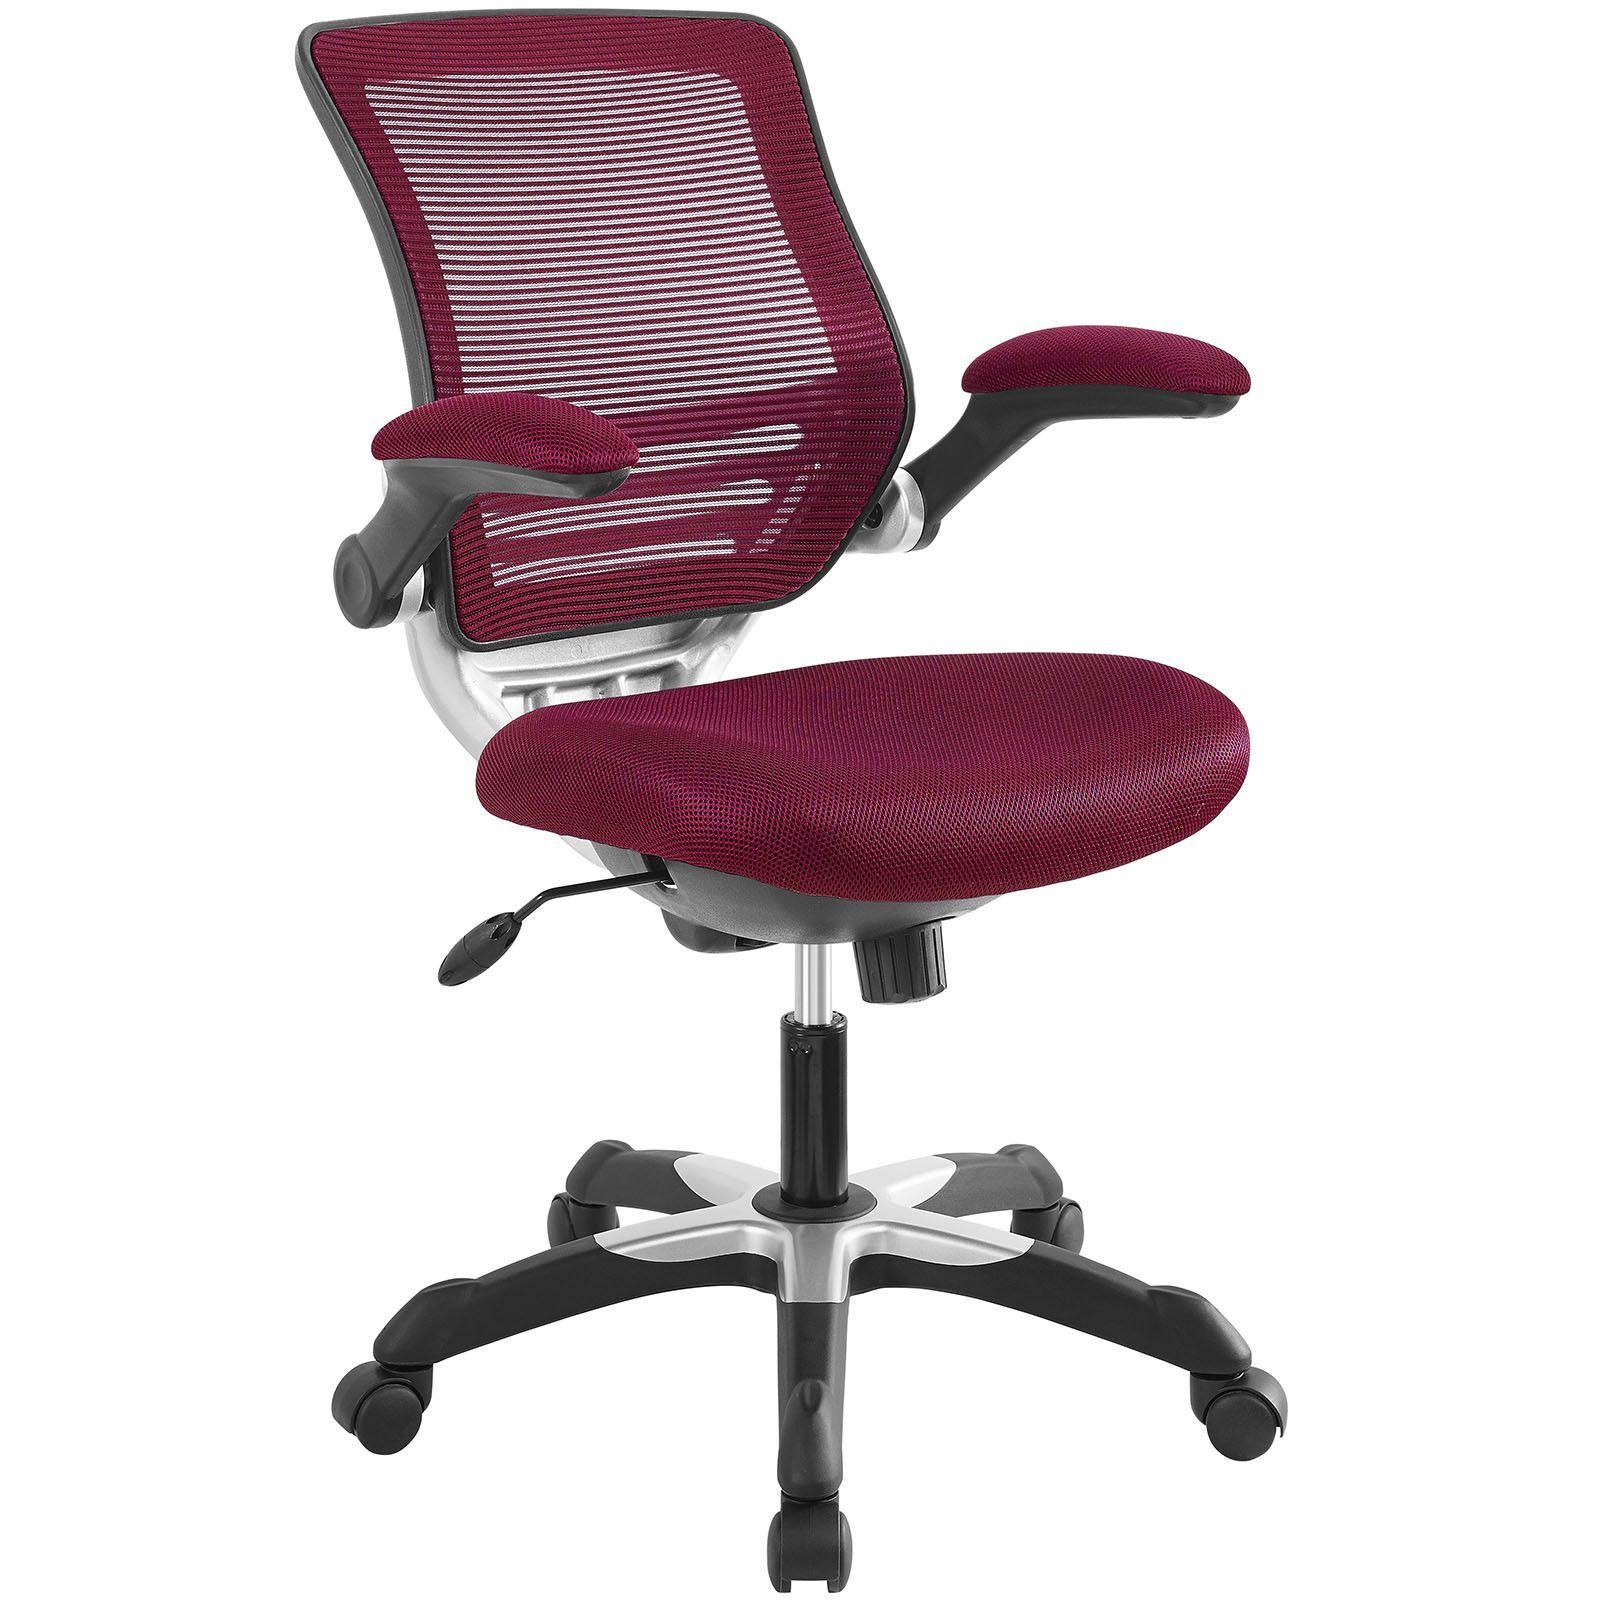 Purple Desk Chair Elegant Home Nilkamal Frolic Easy Chair Purple and ...